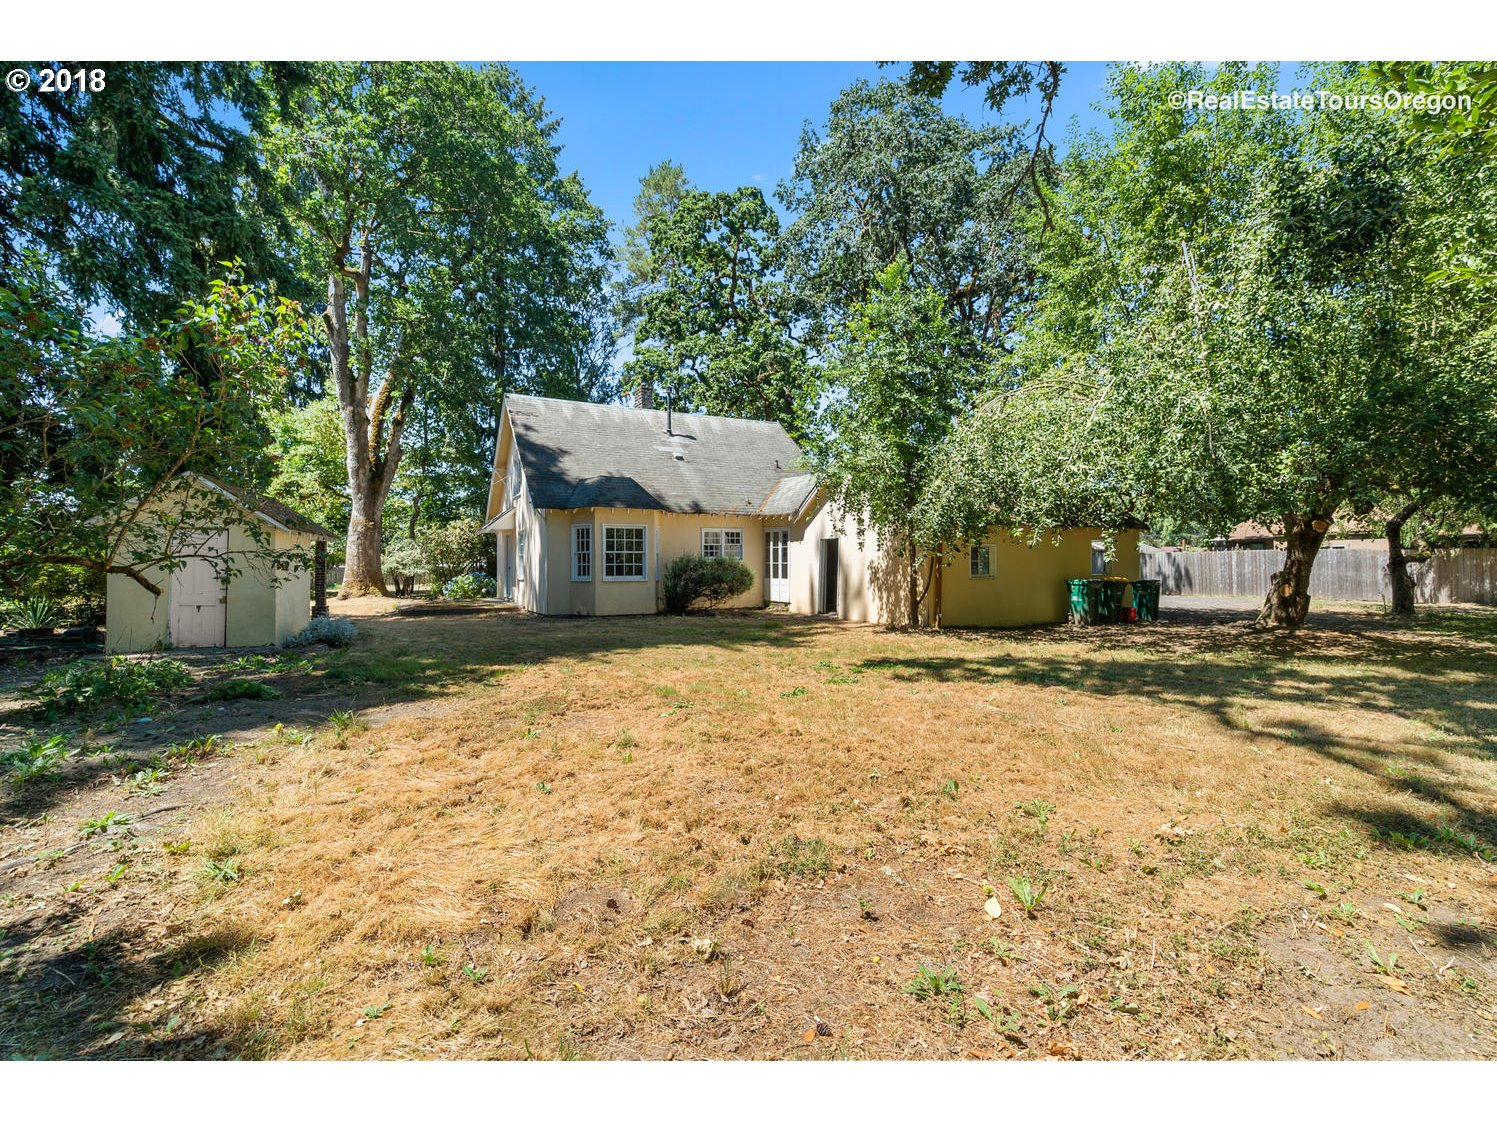 2230 26TH AVE Forest Grove, OR 97116 - MLS #: 18629523